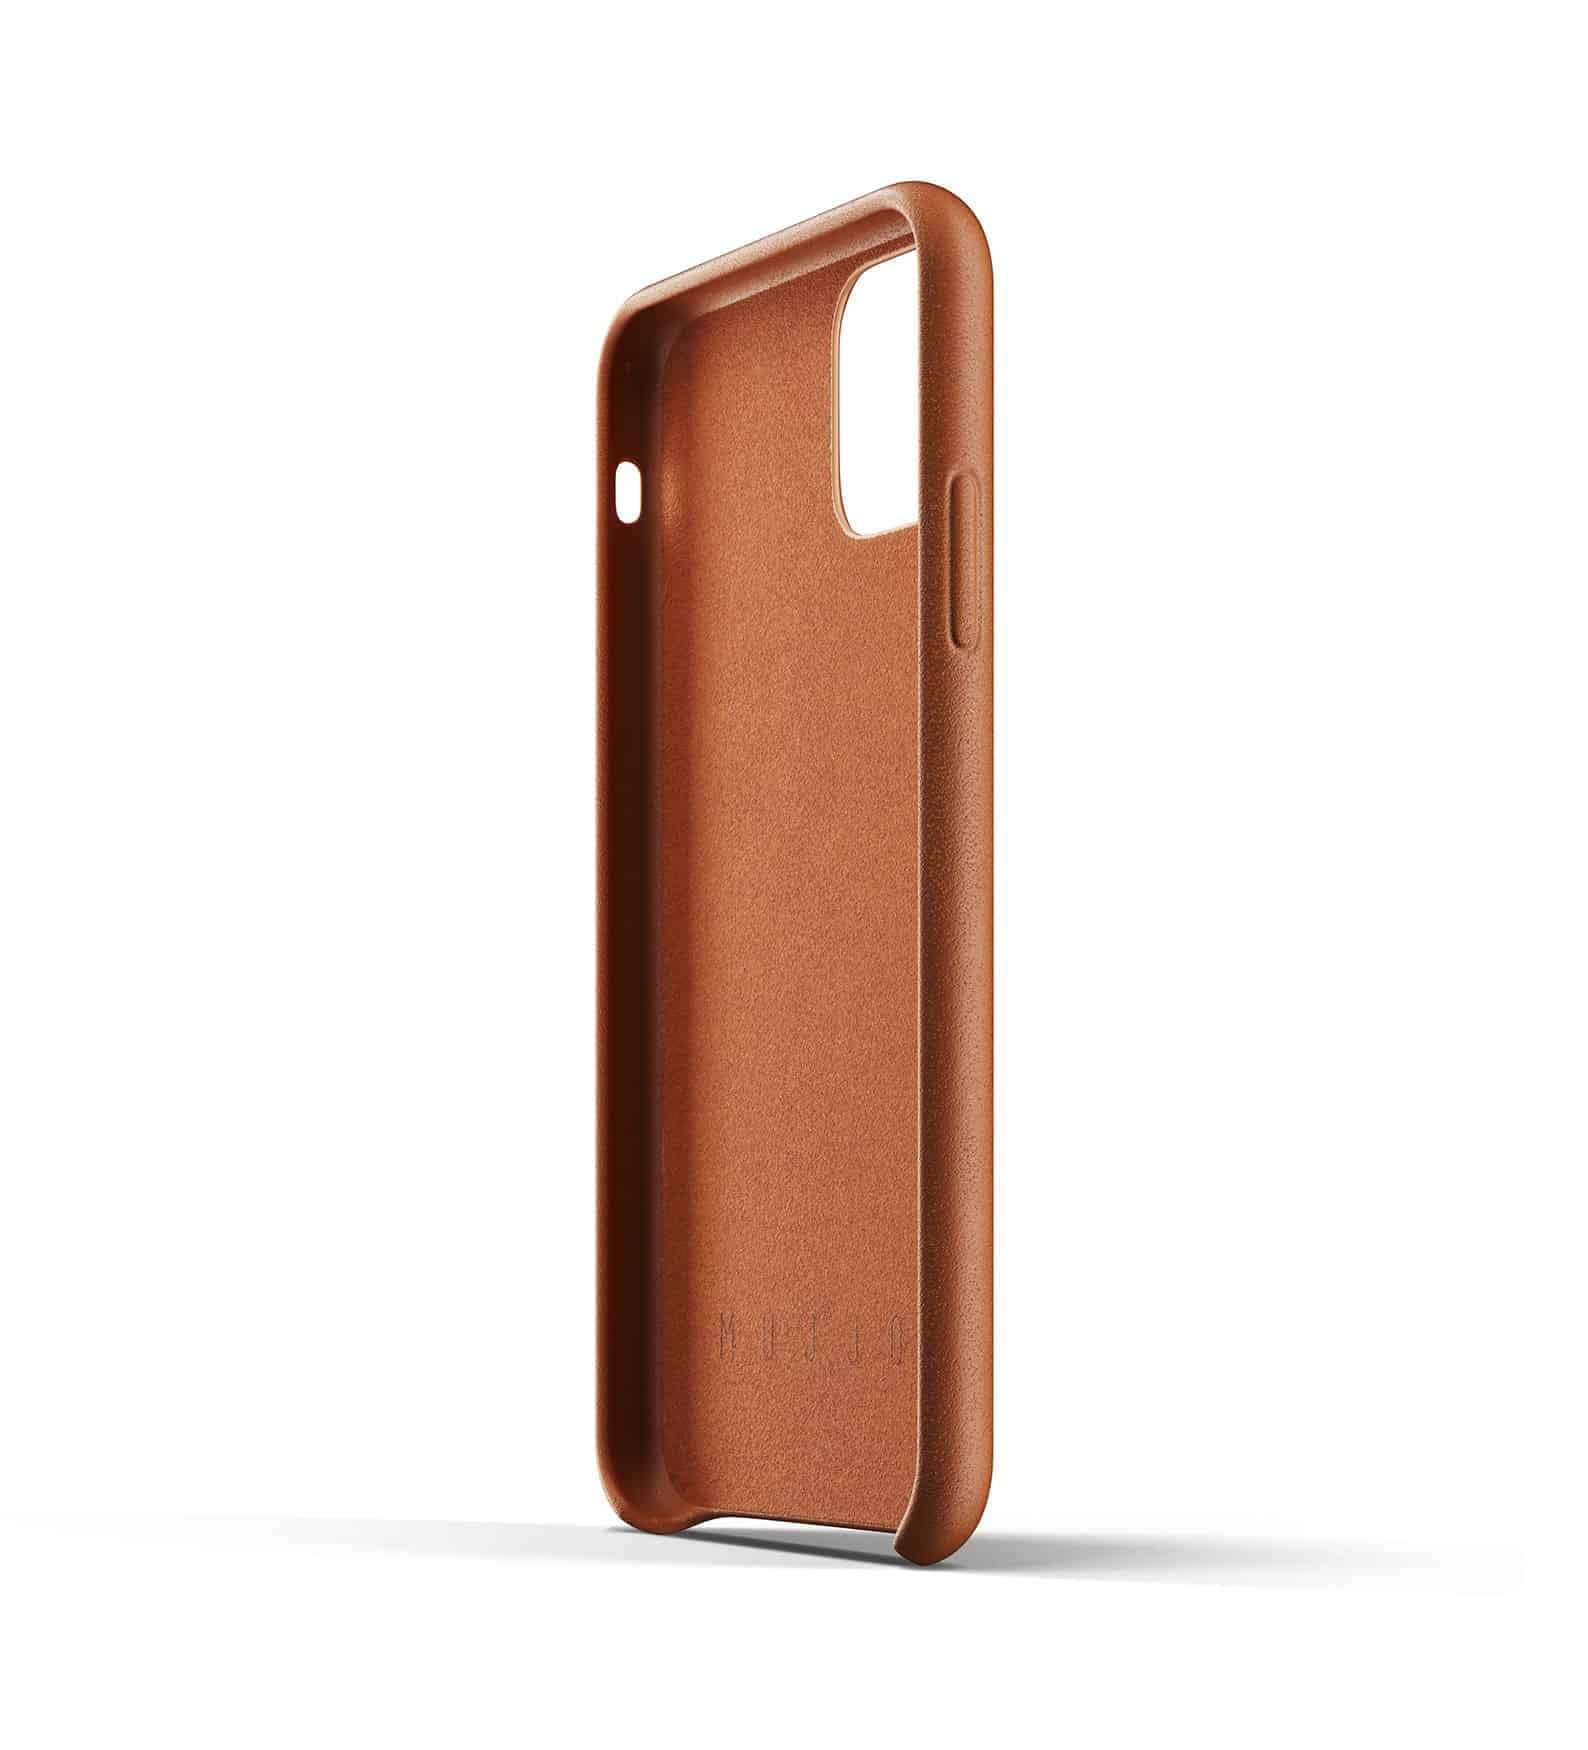 Full leather wallet case for iPhone 11 Tan Thumbnail 05